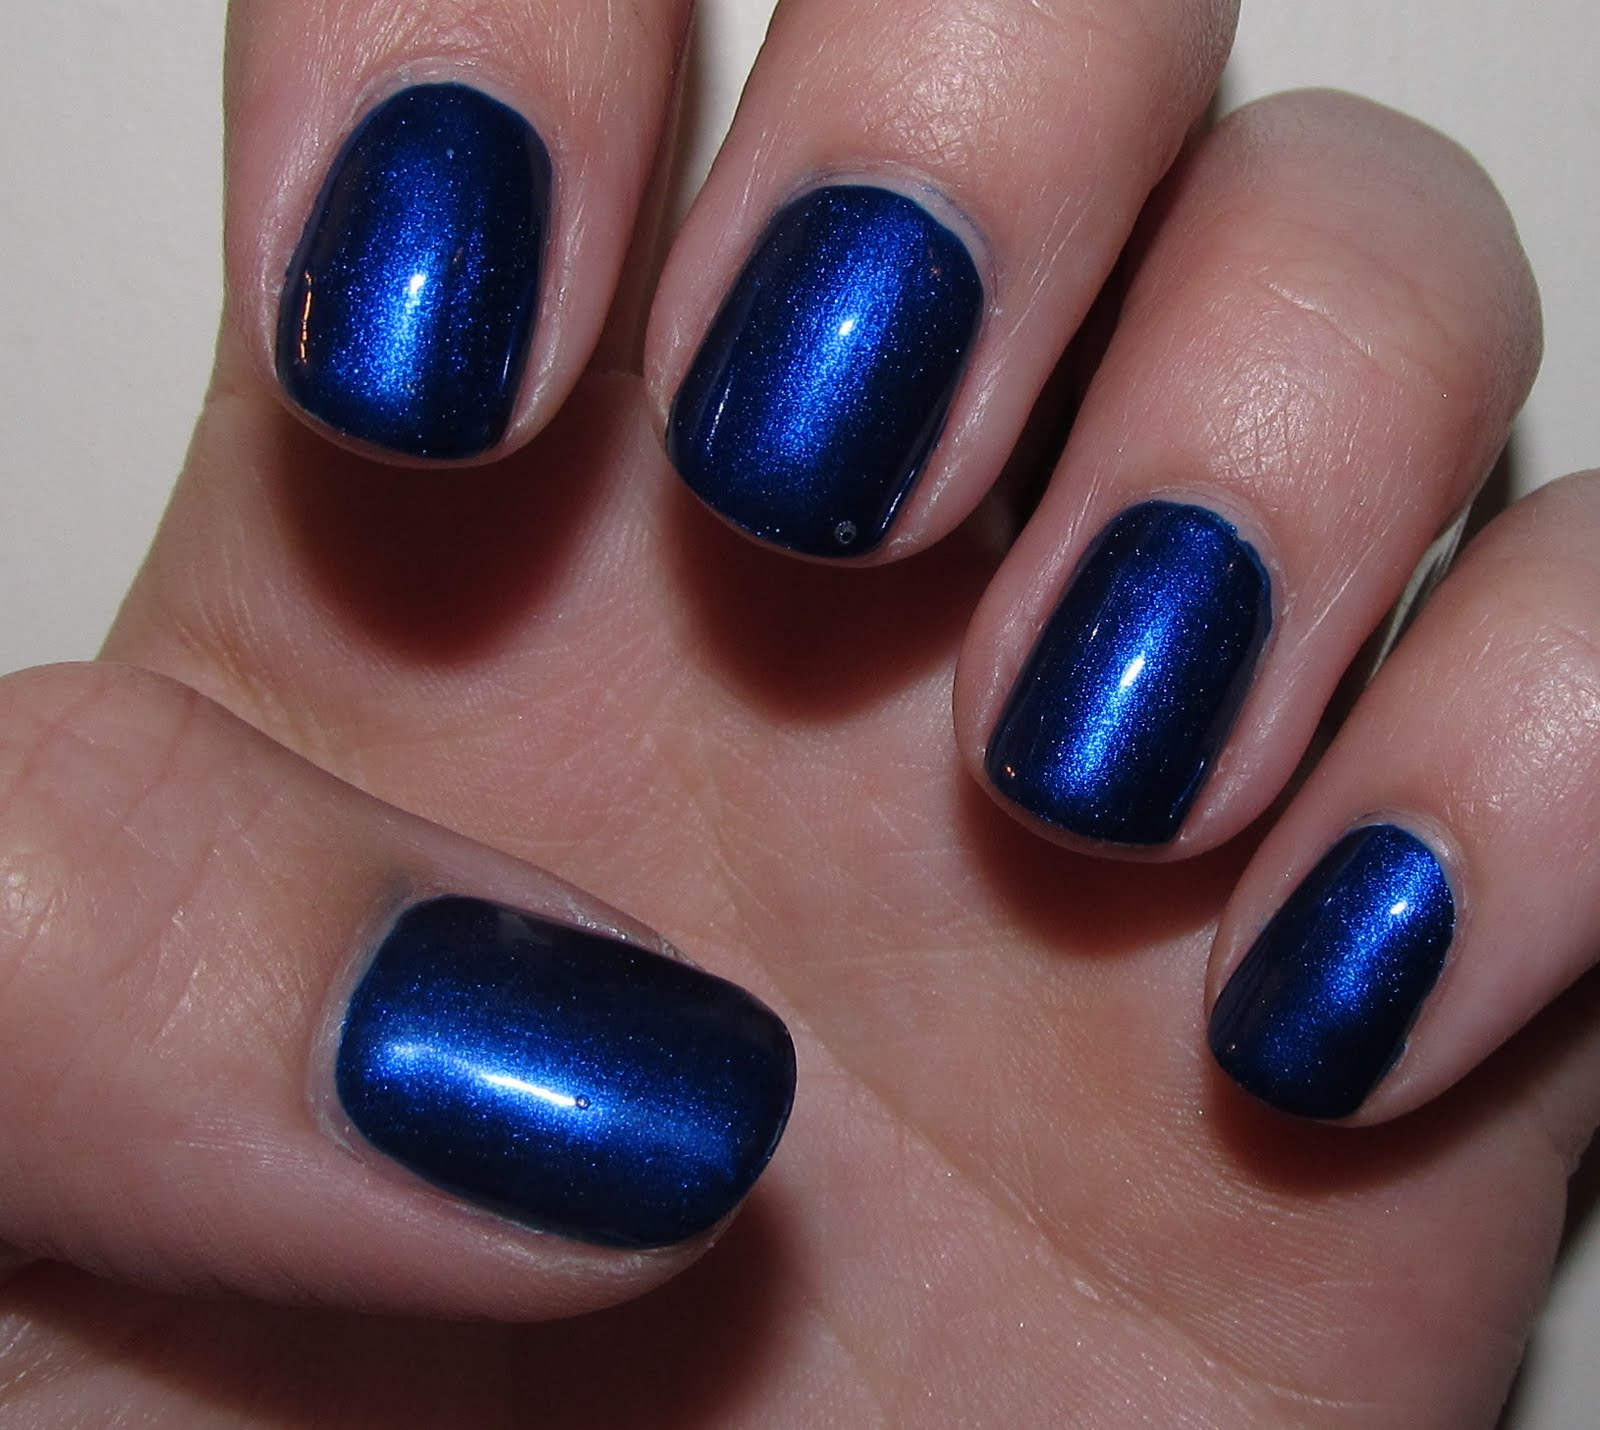 Sally Hansen Insta Dri - Co-Bolt Blue